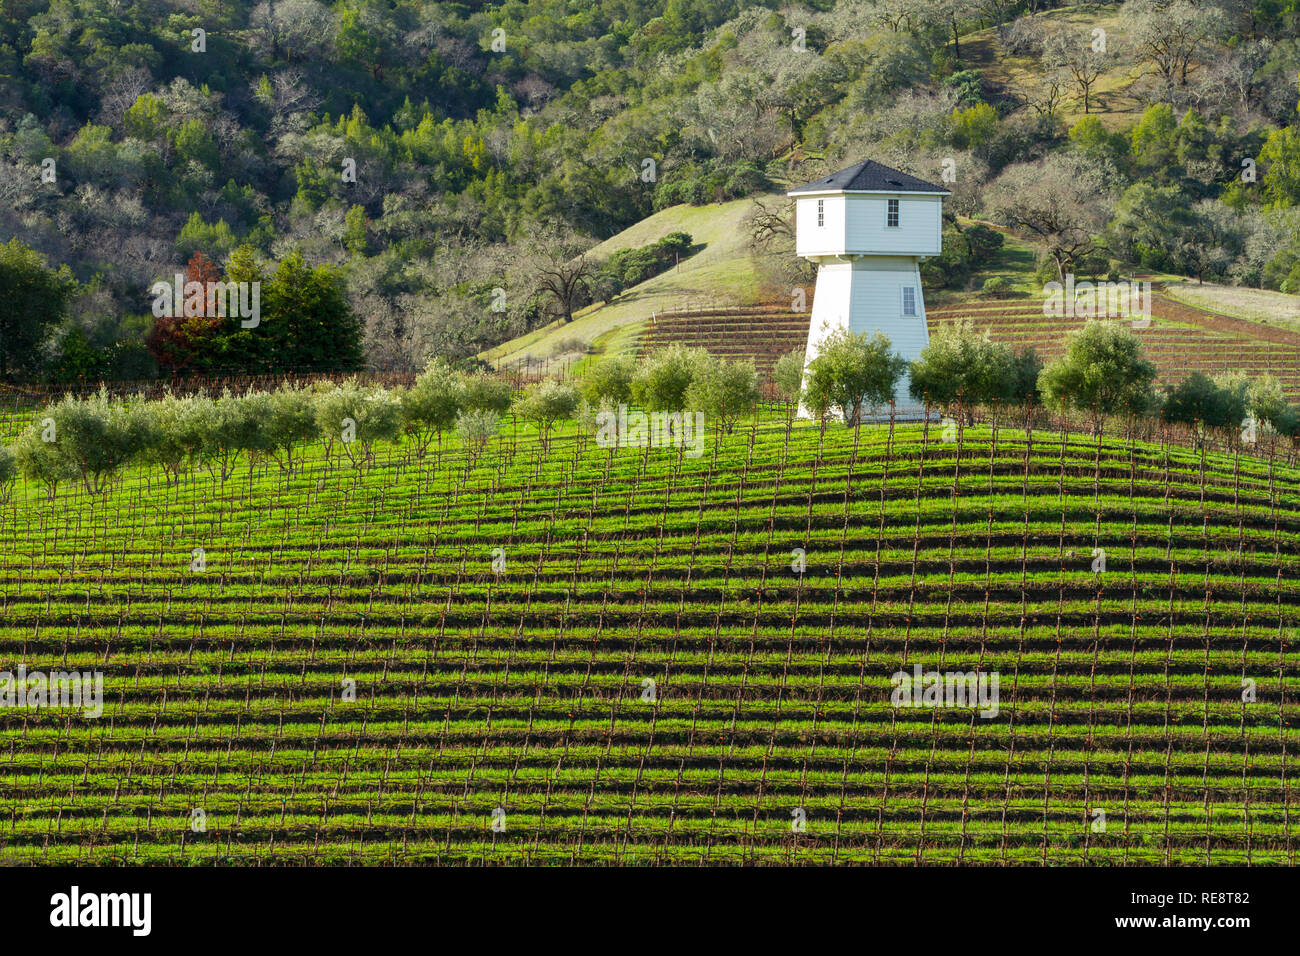 Water and Wine - Water tower above vineyard rows. Geyserville, California USA Stock Photo